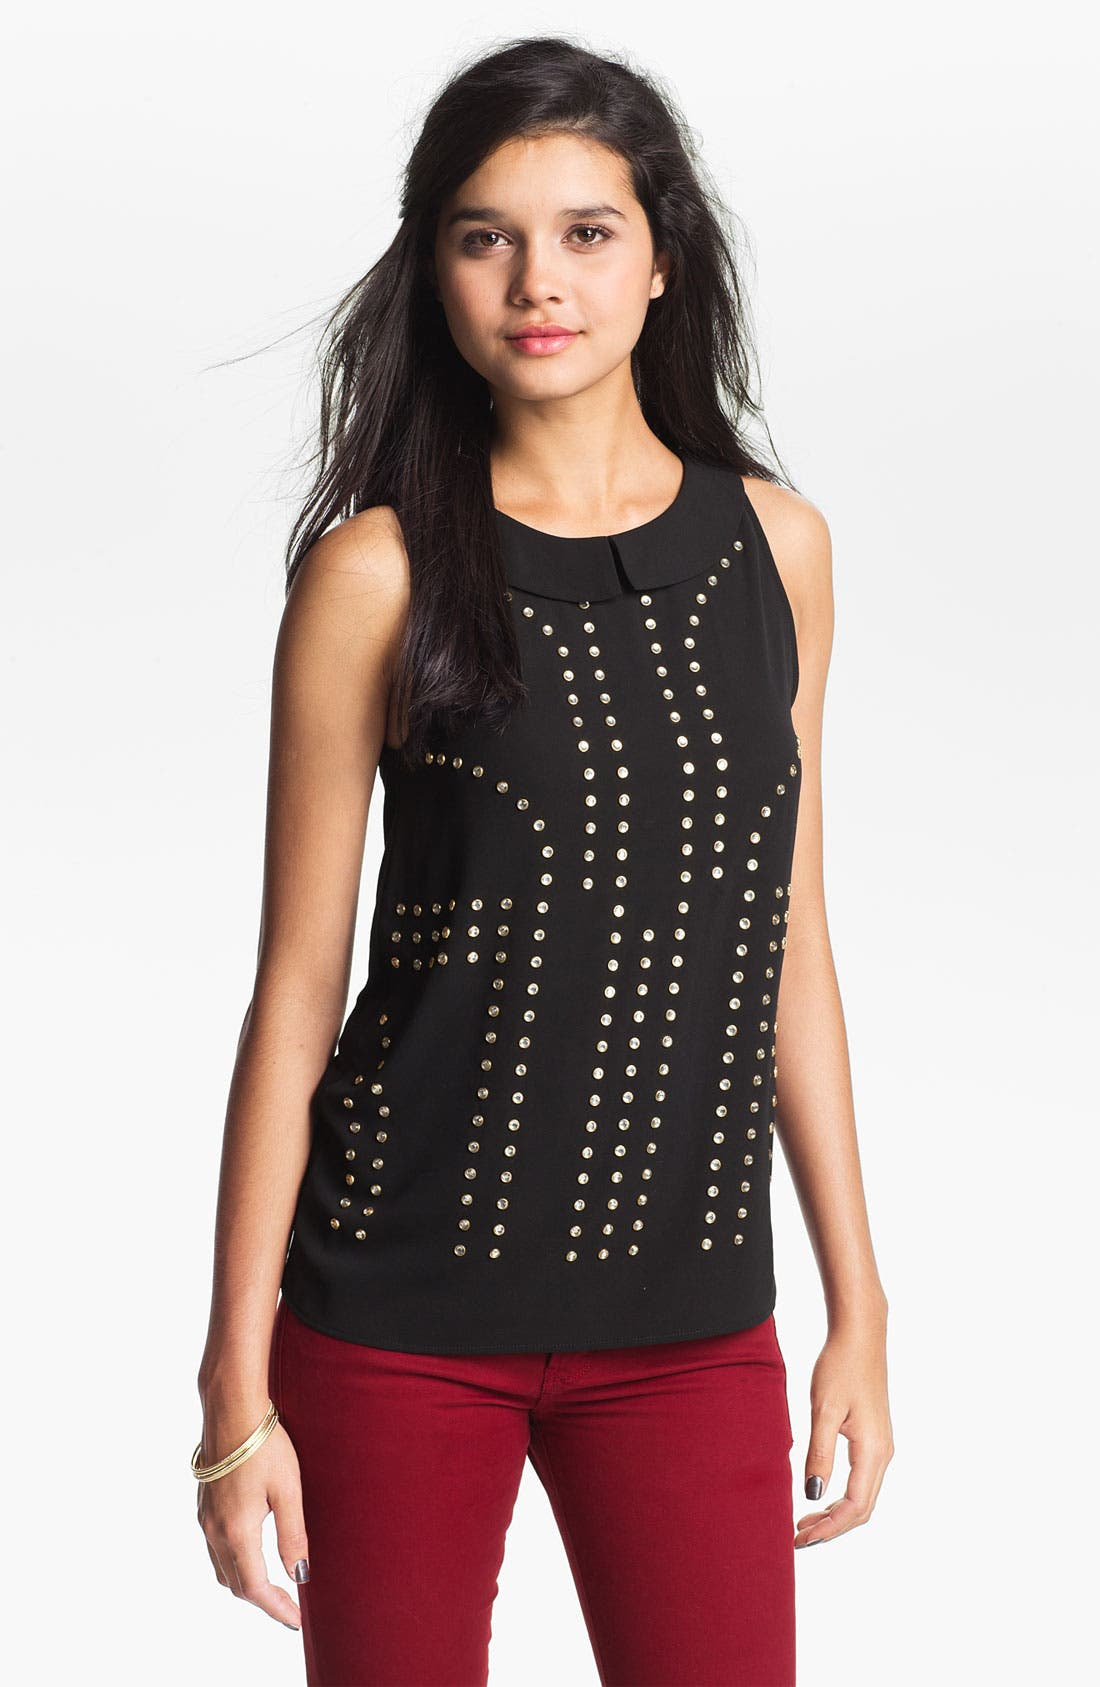 Alternate Image 1 Selected - Elodie Collared Rhinestone Stud Top (Juniors)